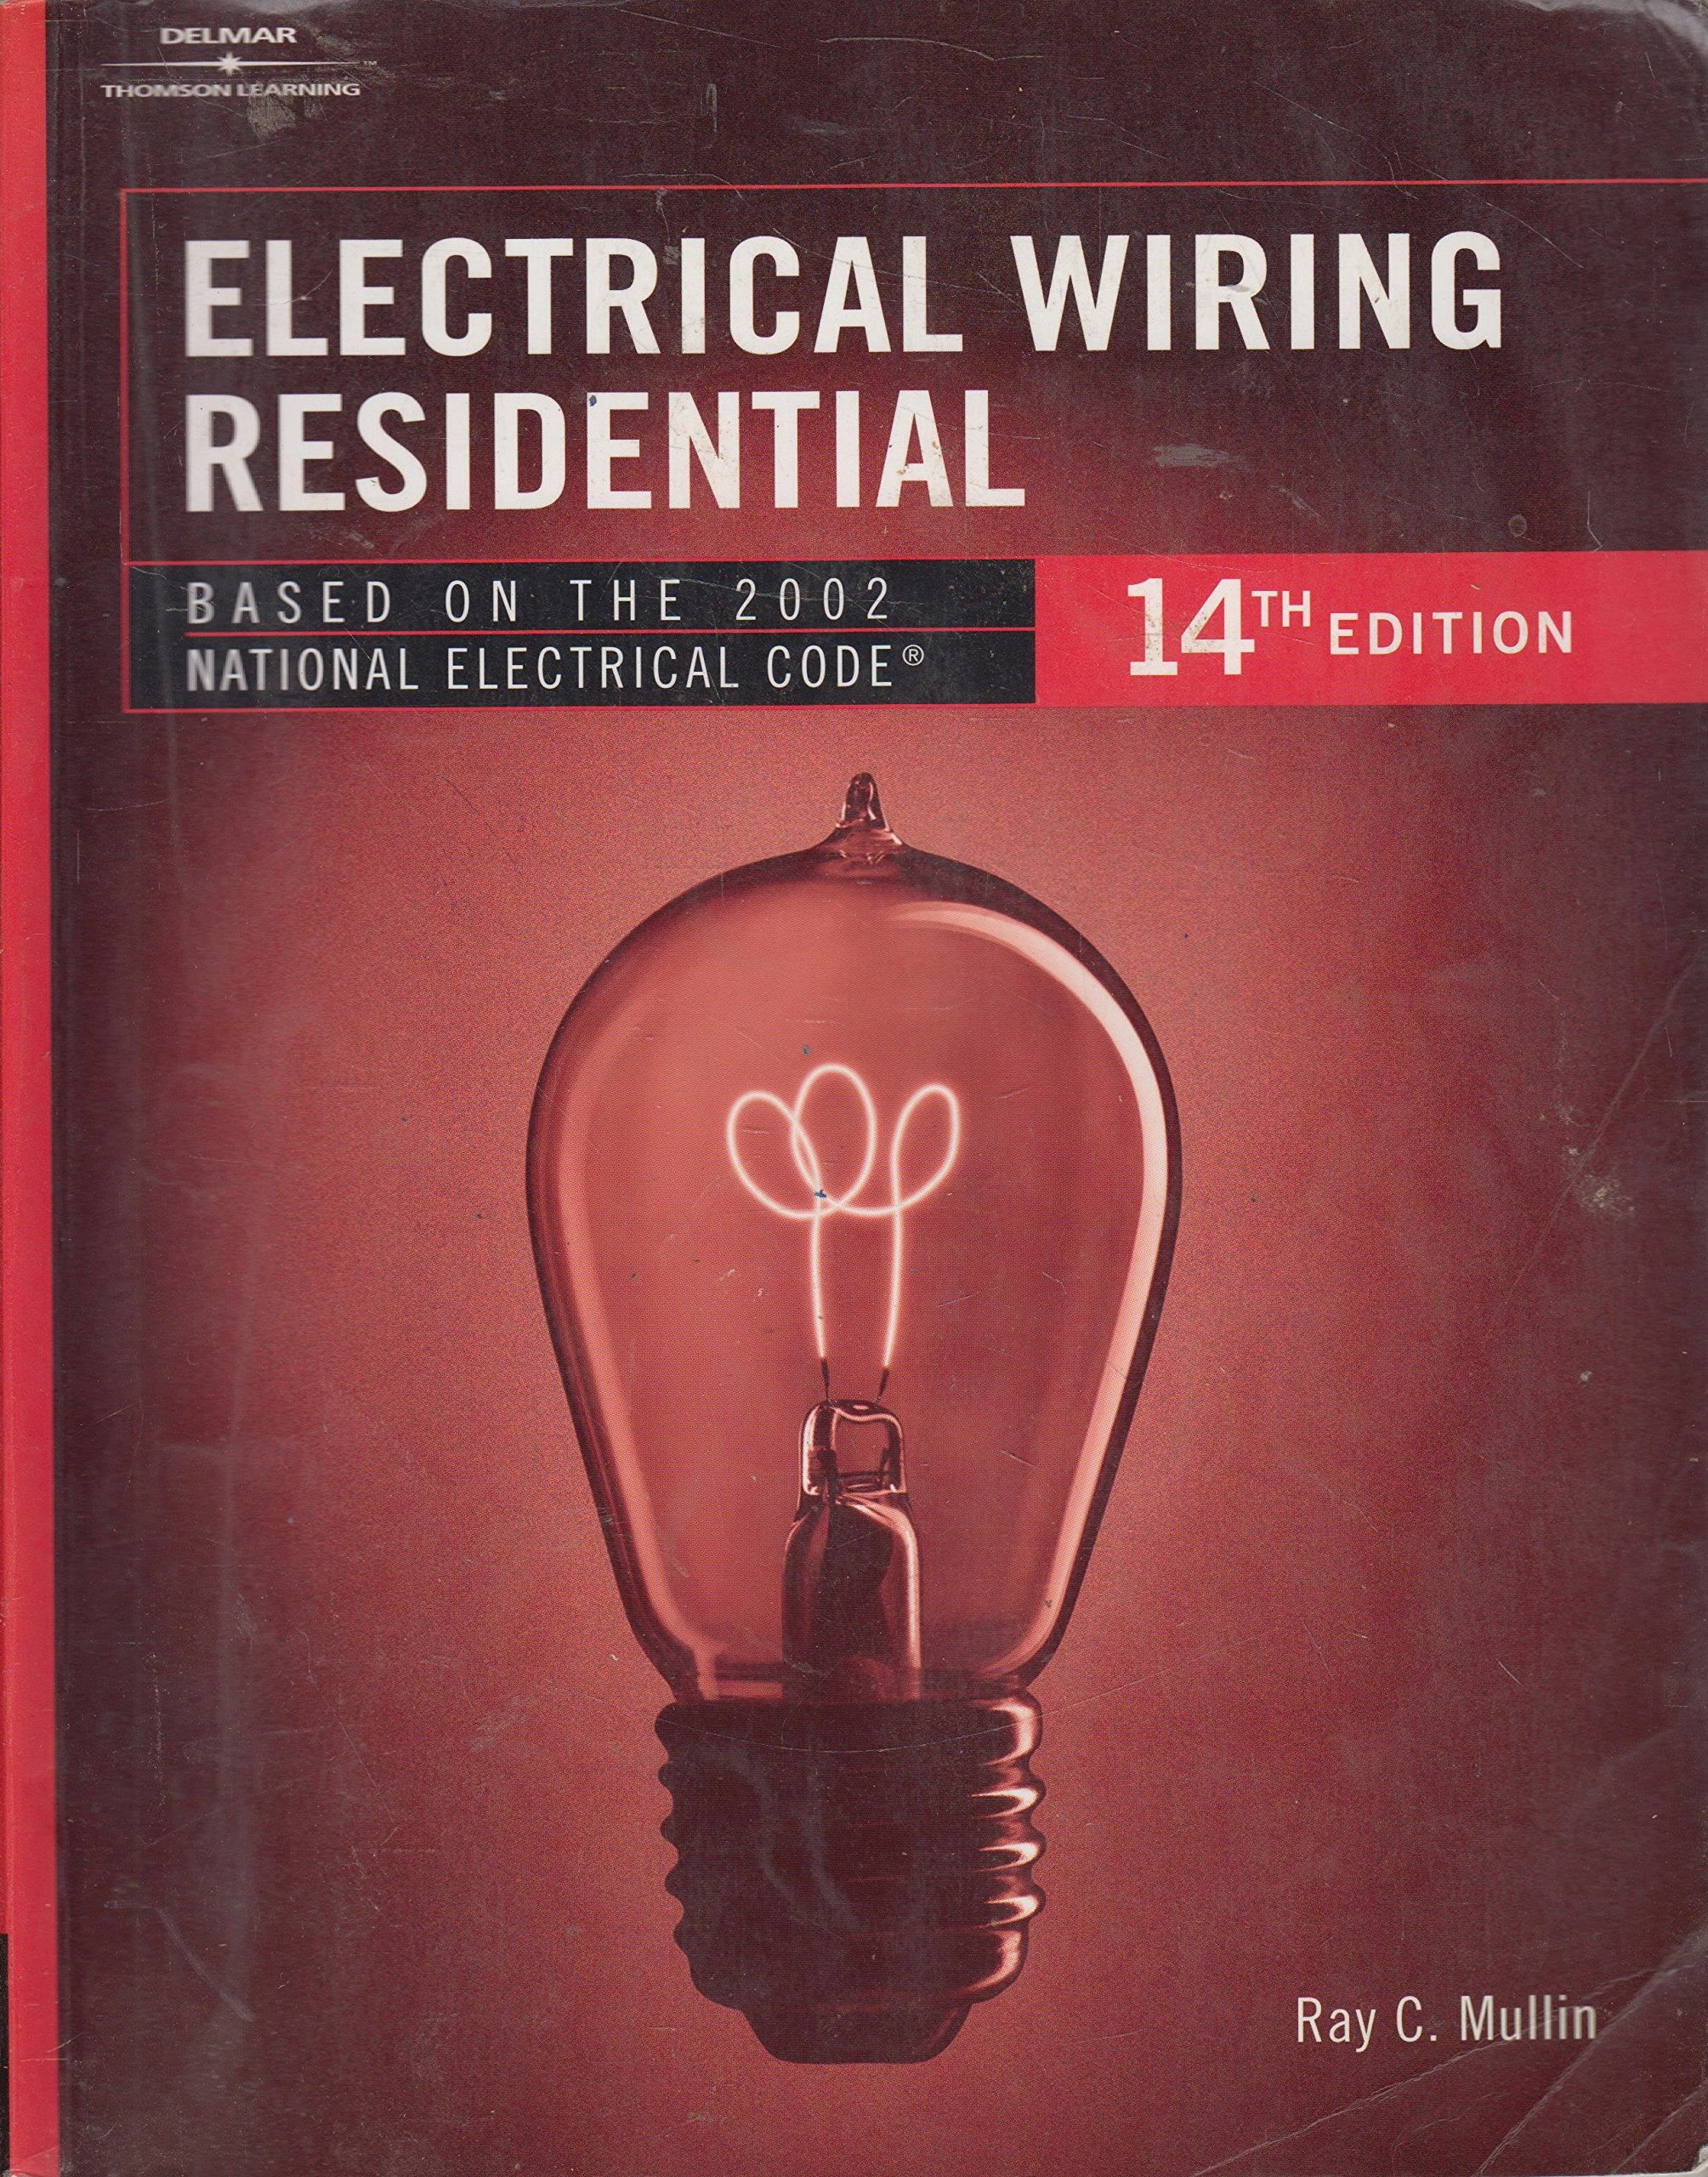 Electrical Wiring Residential Ray Mullin 9780766852501 Learning Books